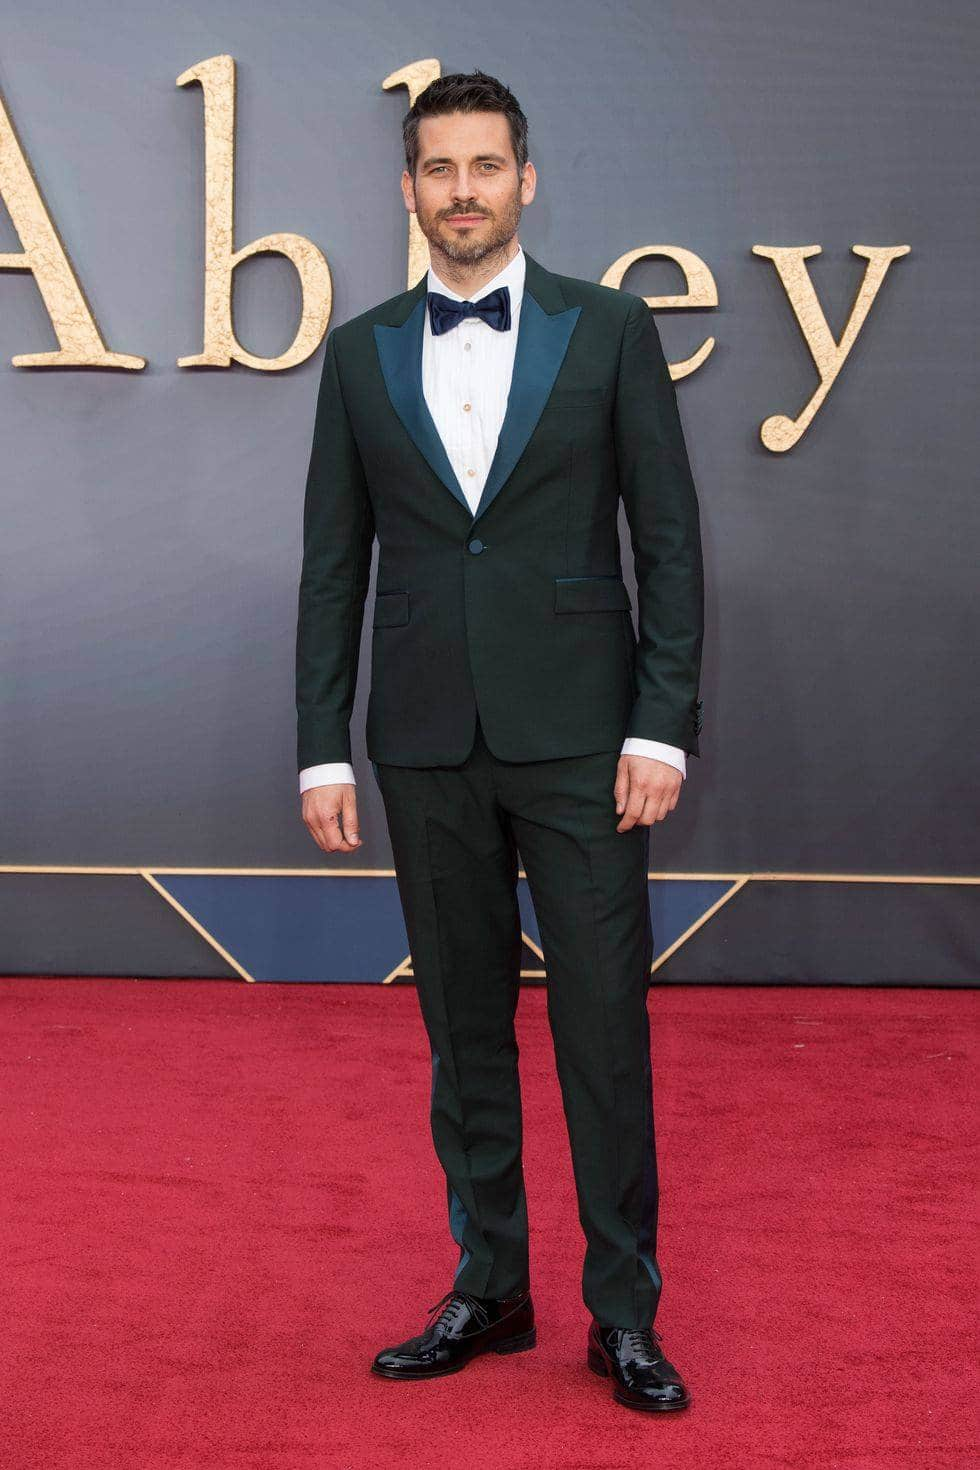 What happened to Robert James-Collier?